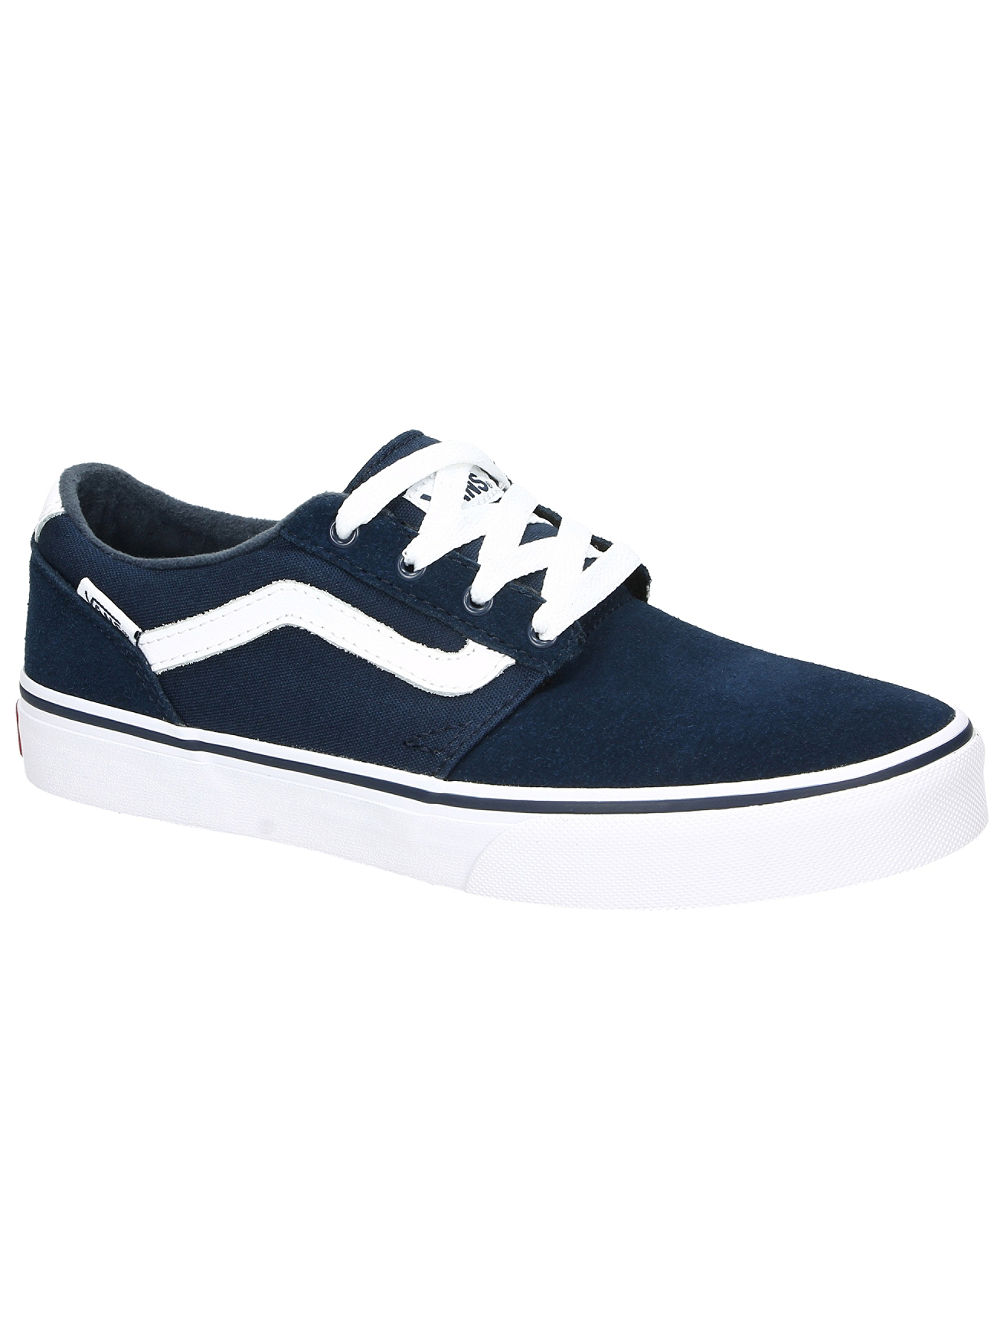 buy vans suede canvas chapman stripe sneakers boys online at blue. Black Bedroom Furniture Sets. Home Design Ideas